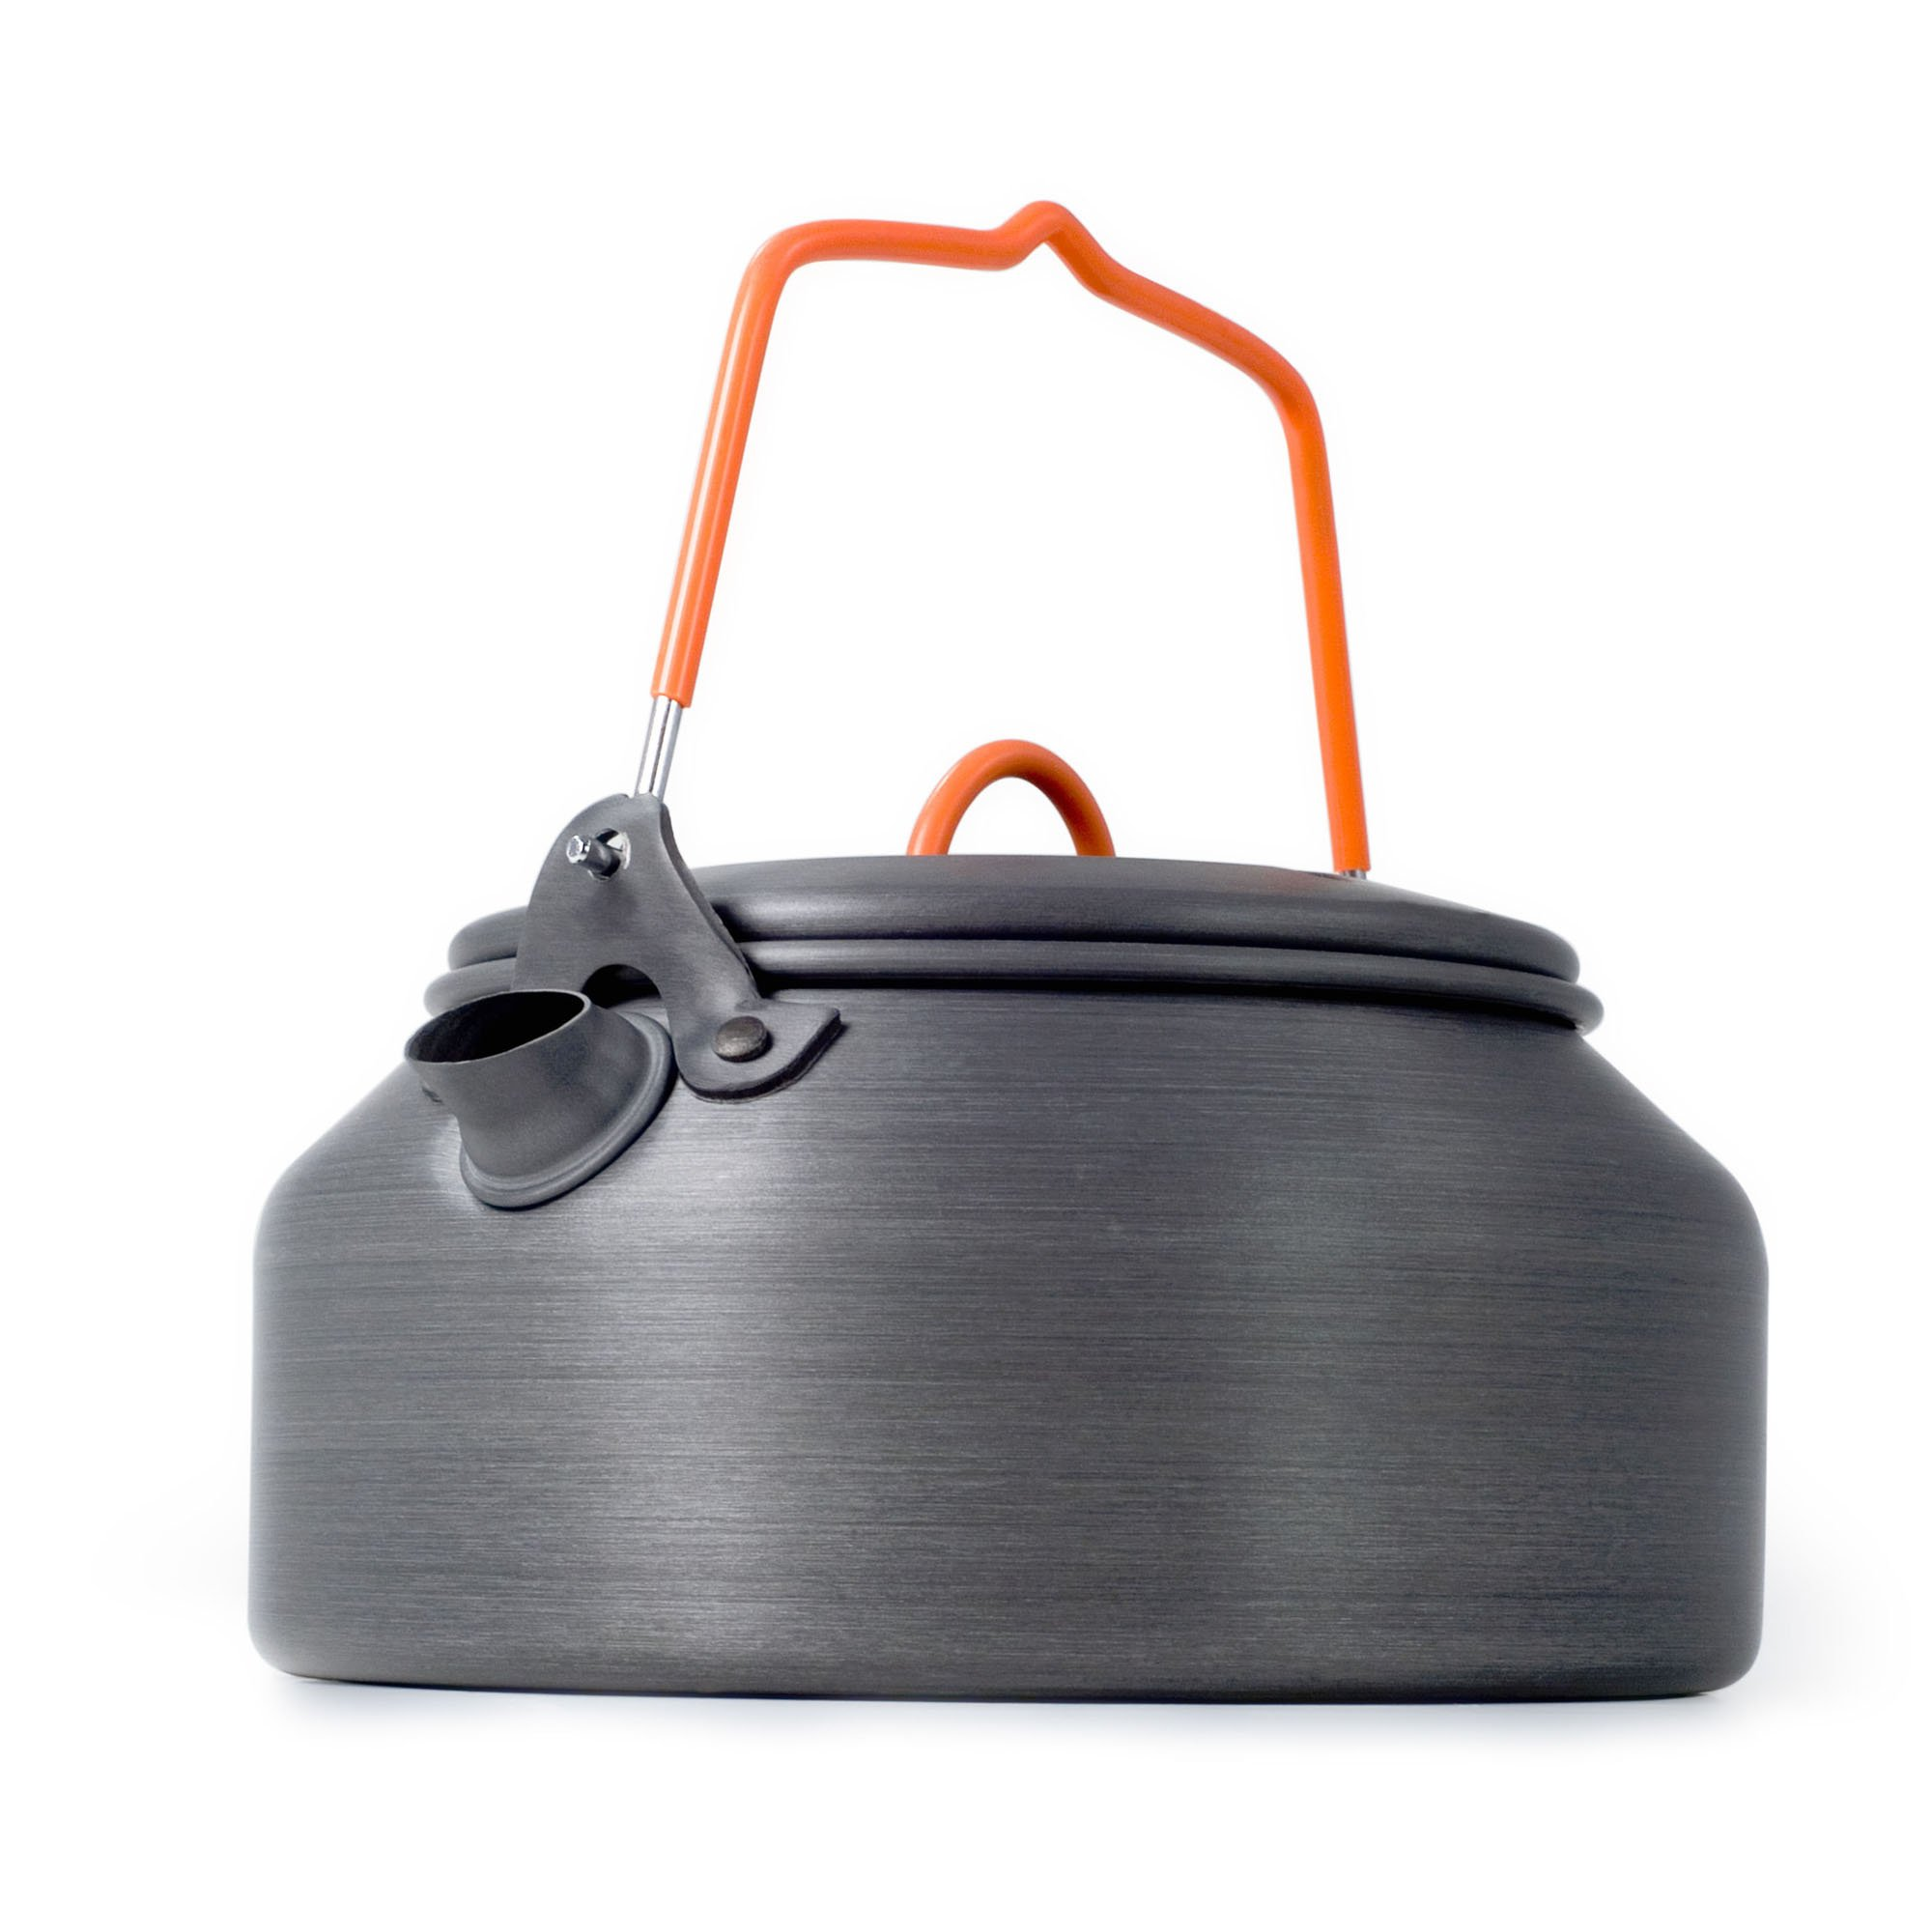 GSI Outdoors - Halulite Tea Kettle, 1 Quart, Superior Backcountry Cookware Since 1985